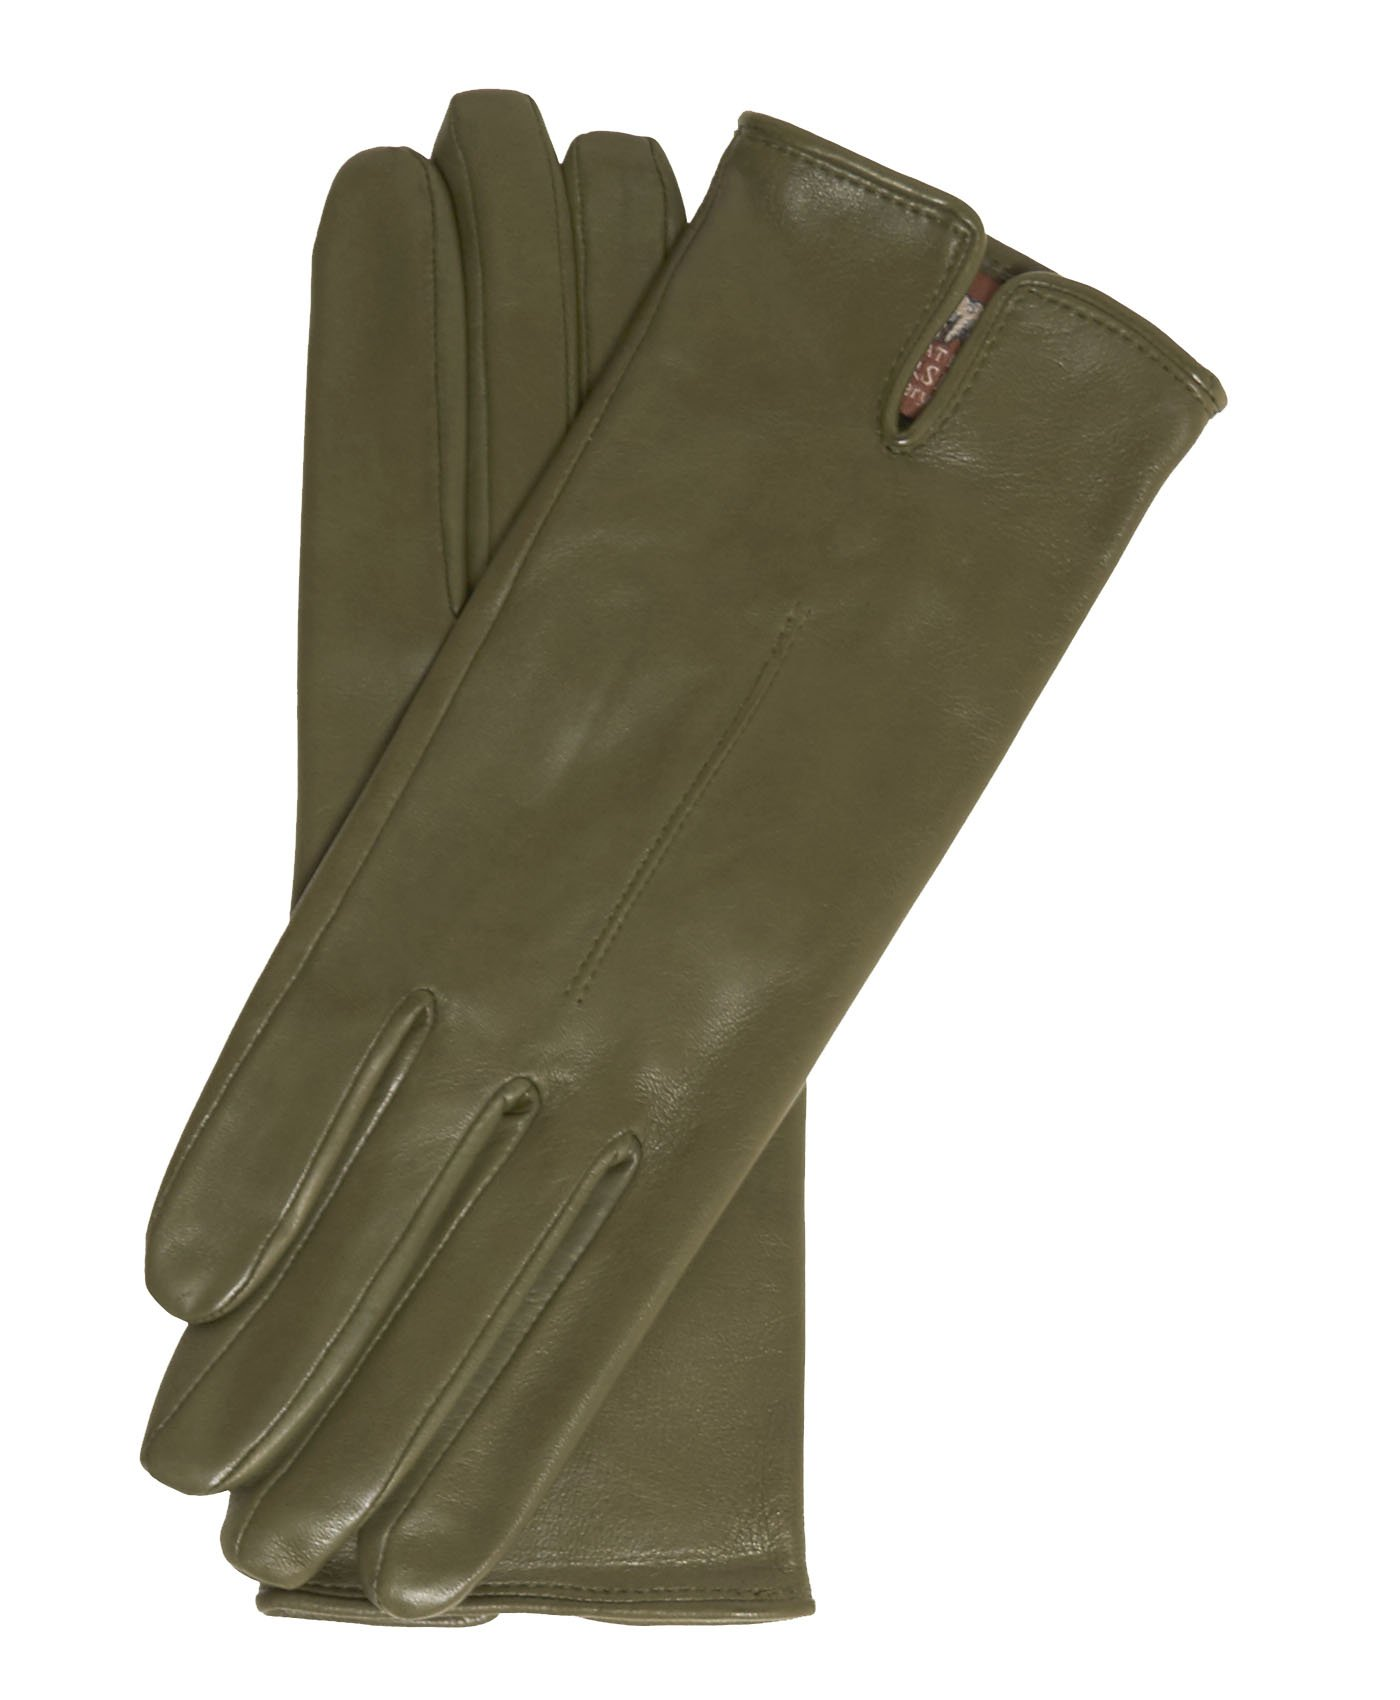 Fratelli Orsini Everyday Women's Italian Silk/Cashmere Lined Leather Gloves Size 6 1/2 Color Olive